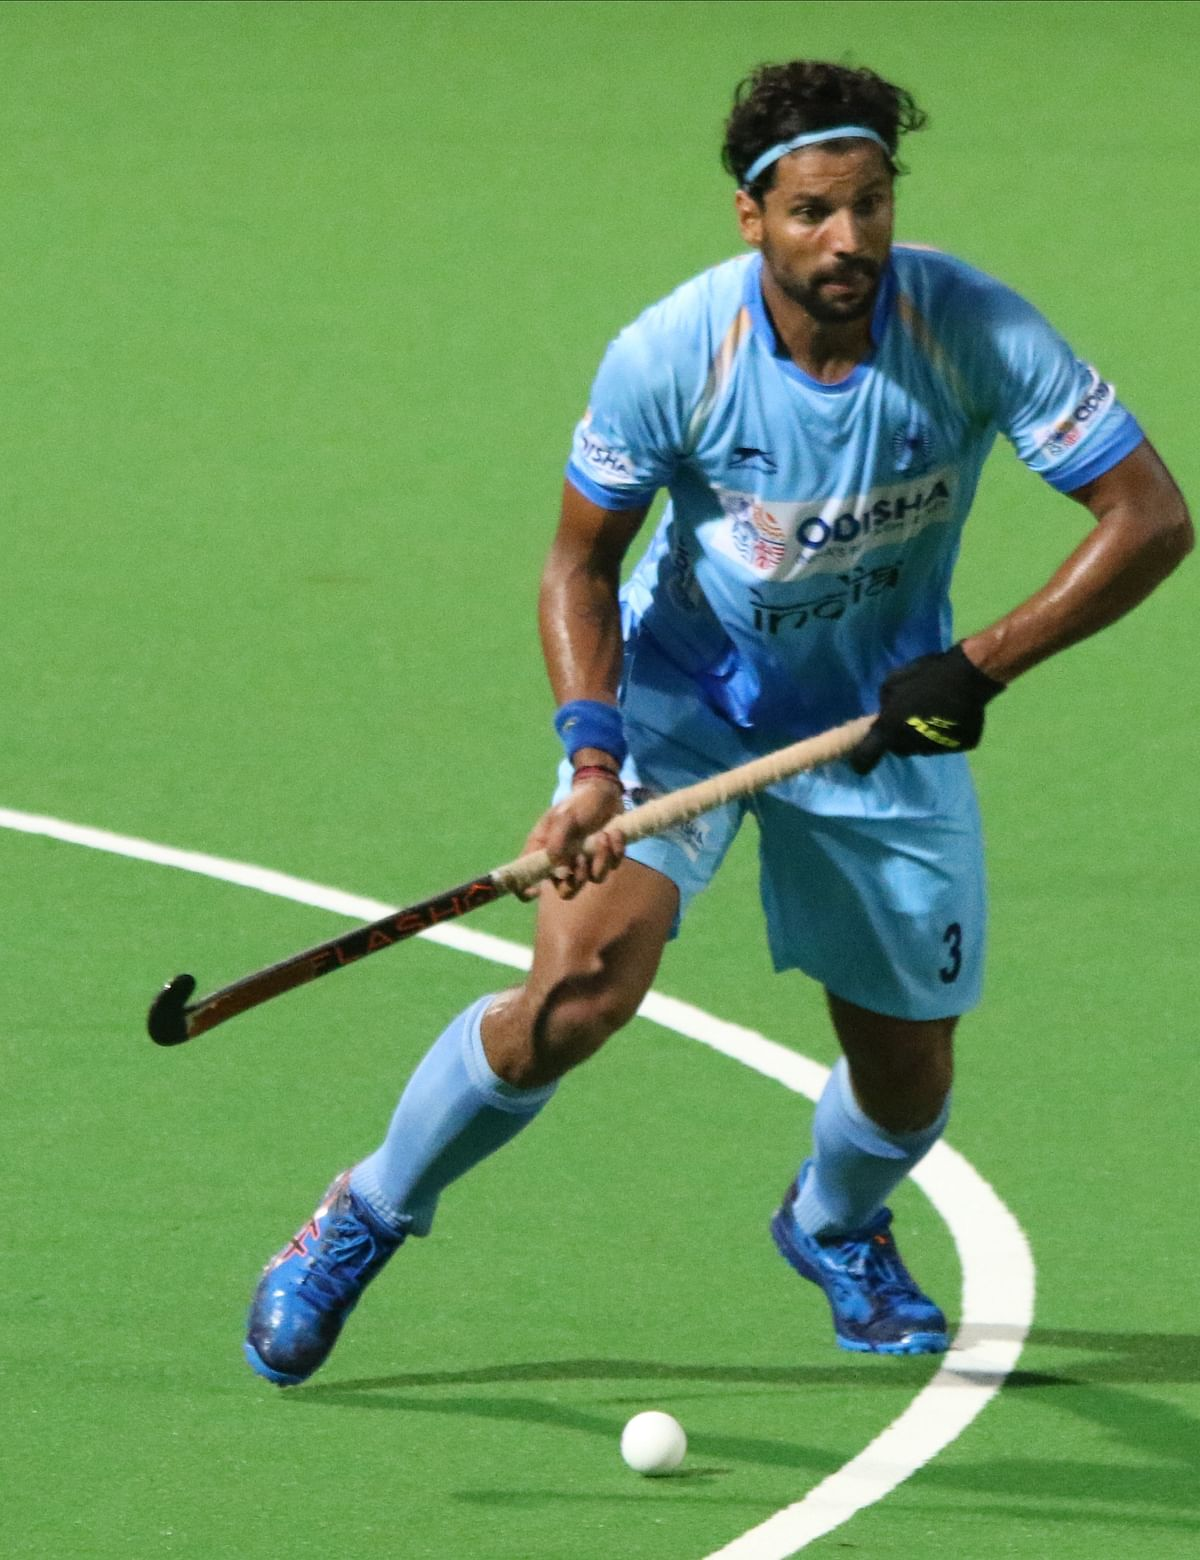 It was only in the 53rd minute that India managed to score their second goal as Rupinder Pal converted a penalty corner.